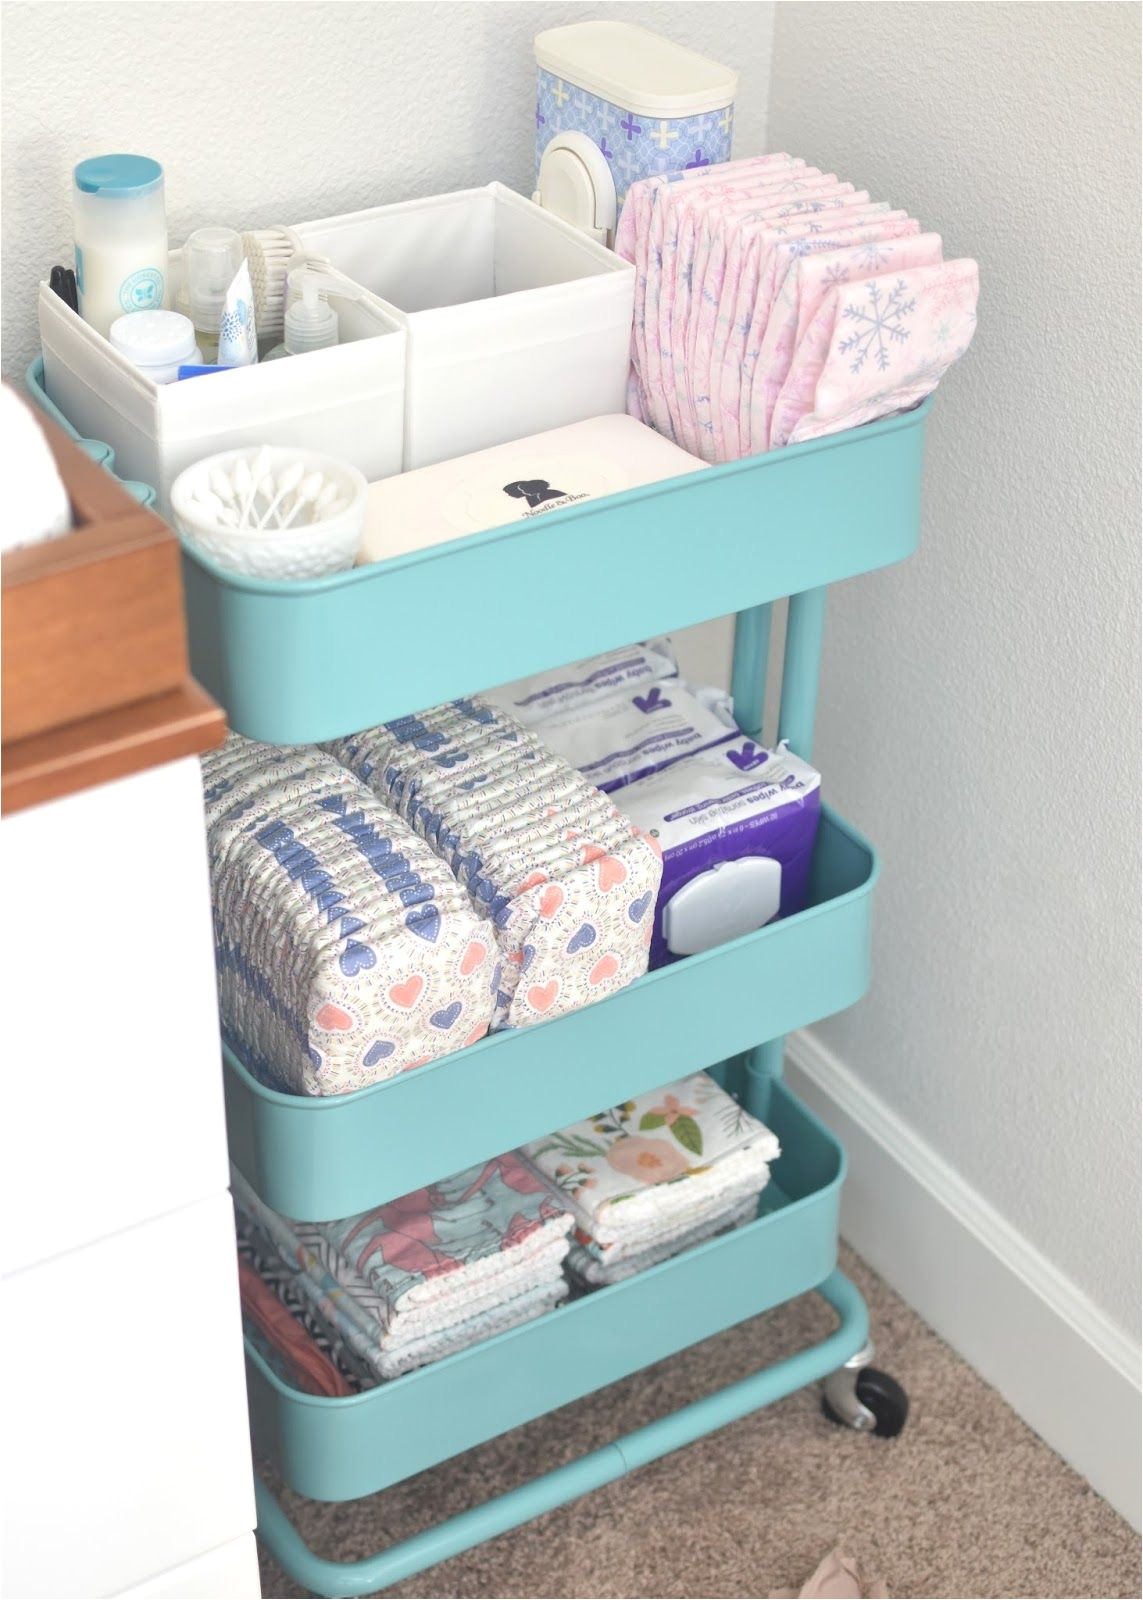 Rolling Cart with Drawers Ikea Convert An Ikea Rolling Cart to Changing Station Storage for Diapers